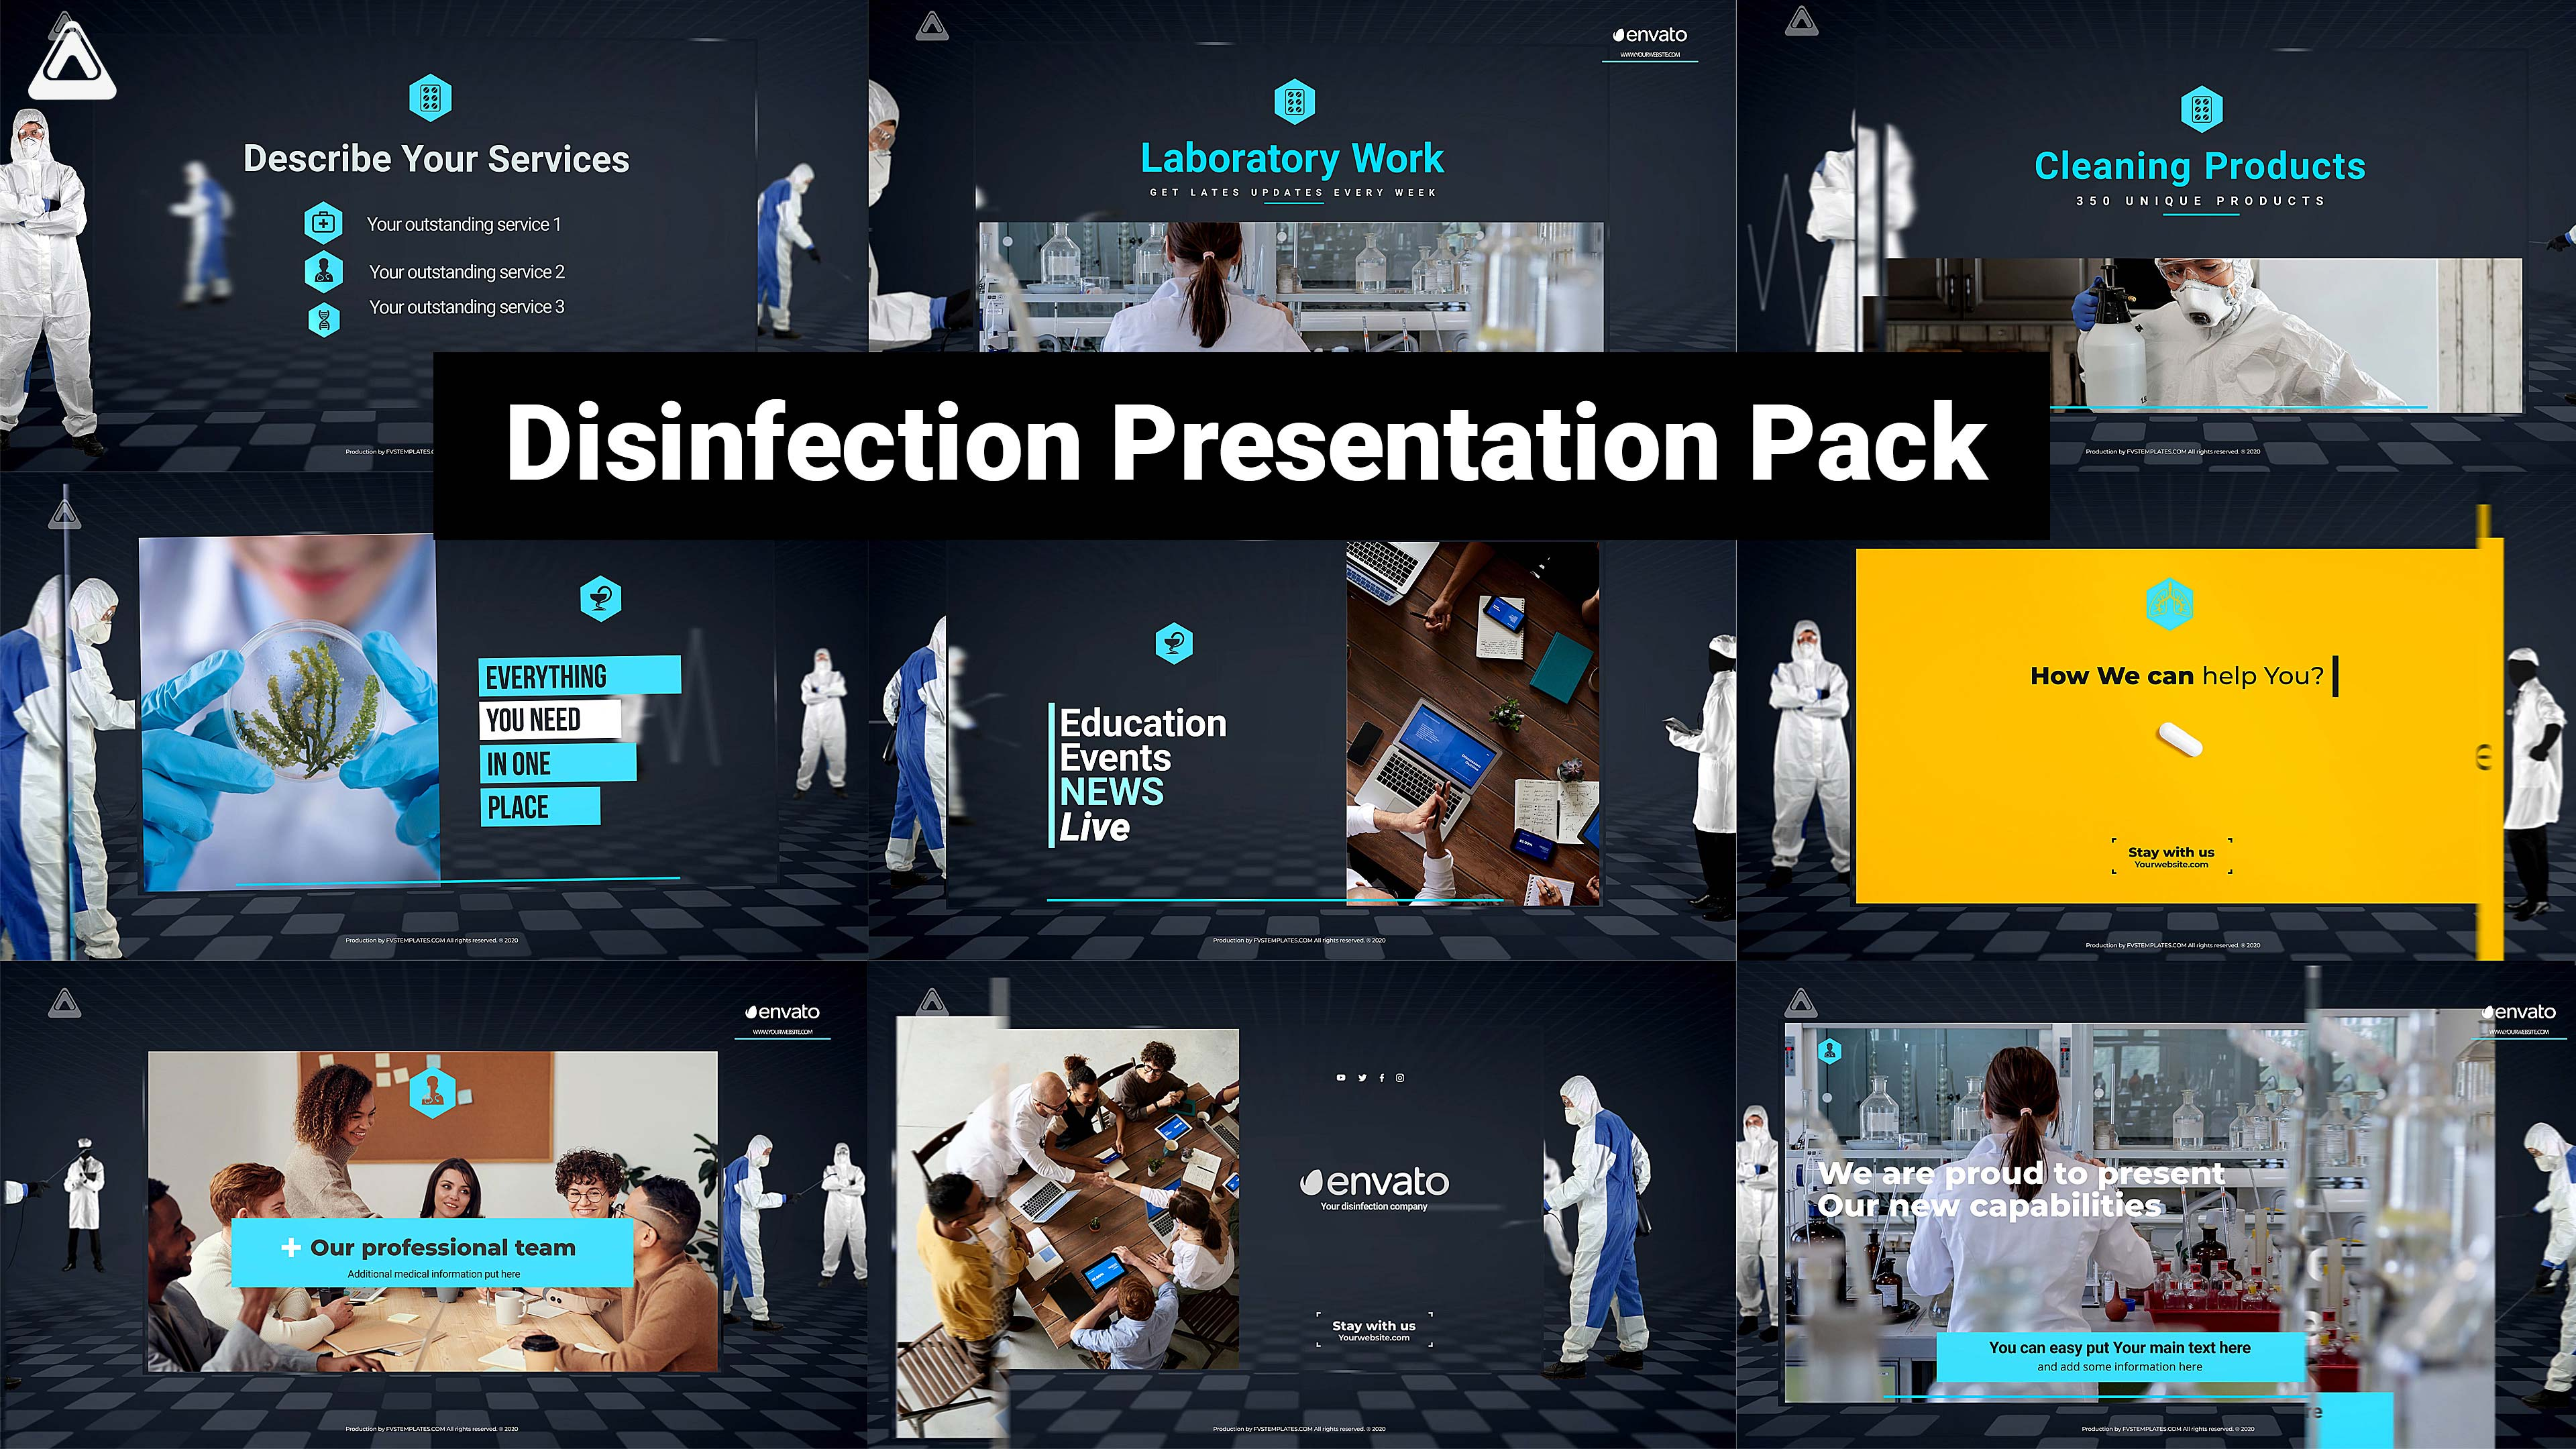 Disinfection Presentation Pack